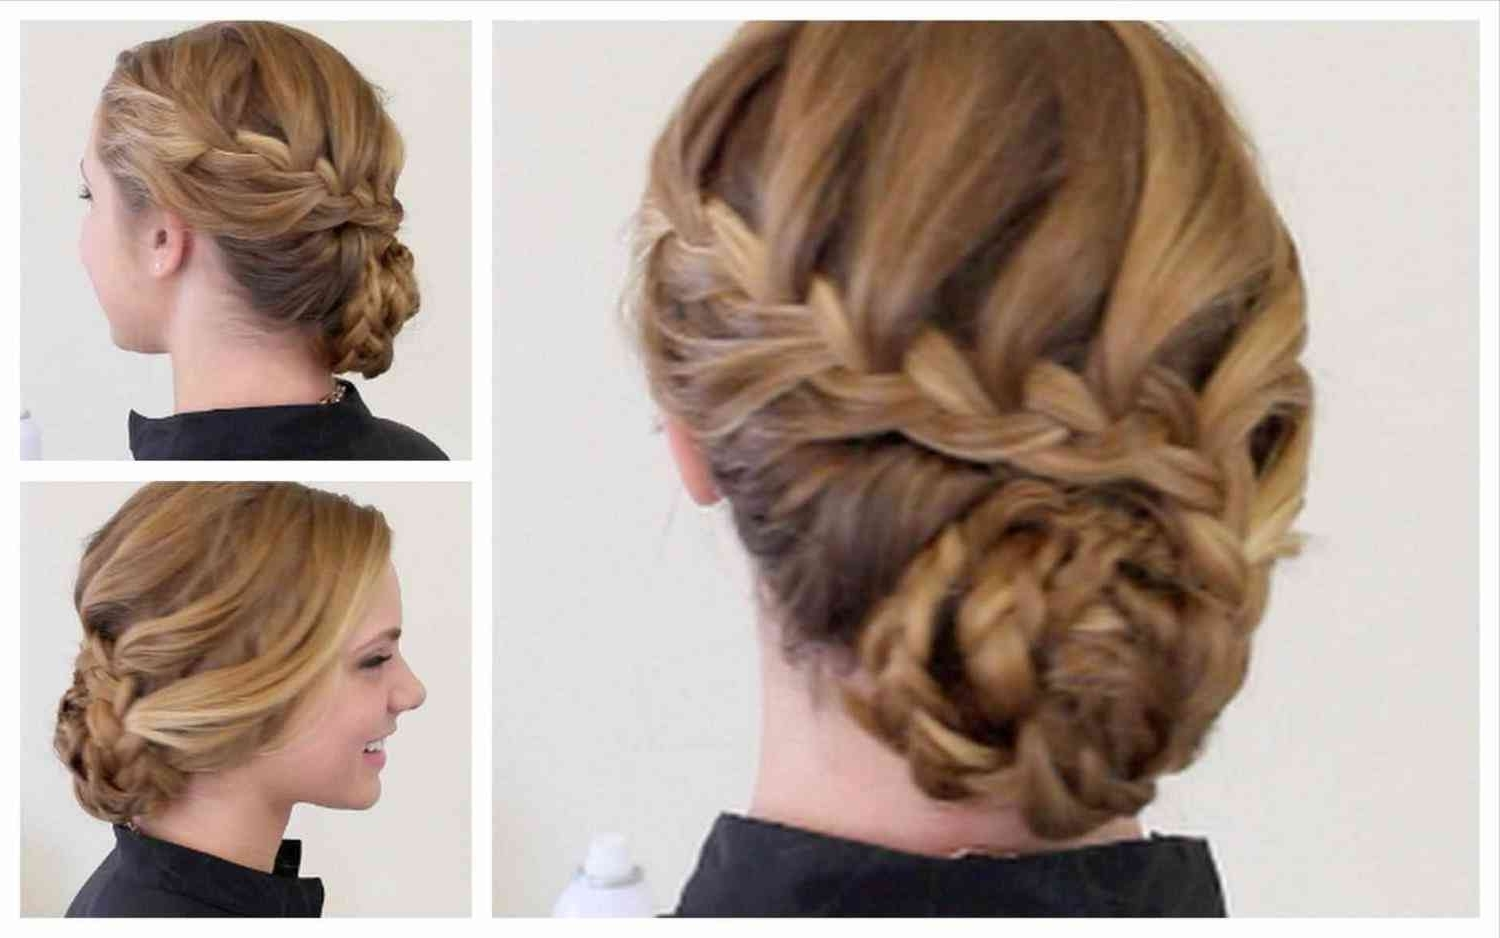 Frizzy Hair Prom Hairstyles U Updos Ideas Stepupdo With Curls Intended For Hair Extensions Updo Hairstyles (View 14 of 15)